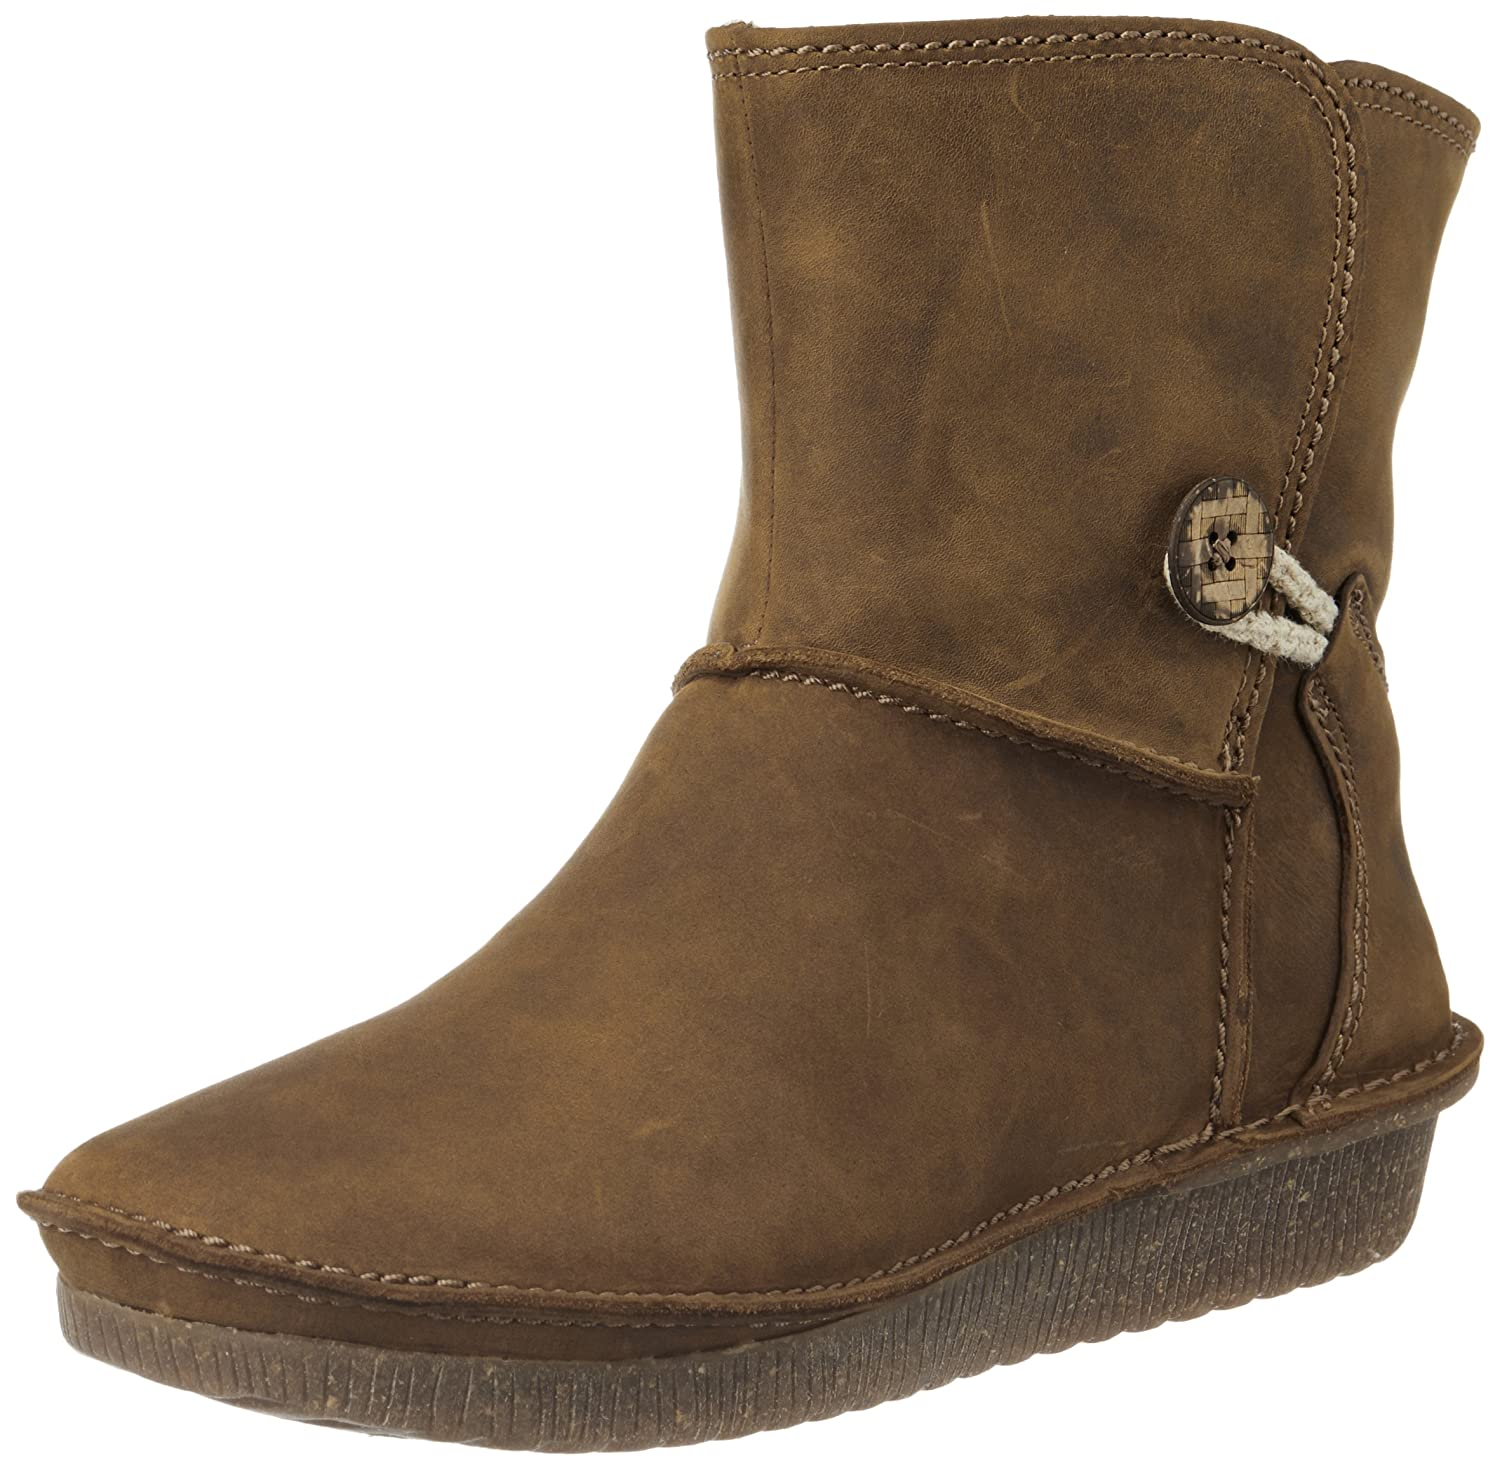 Clarks Women's Lima Caprice Leather Boots